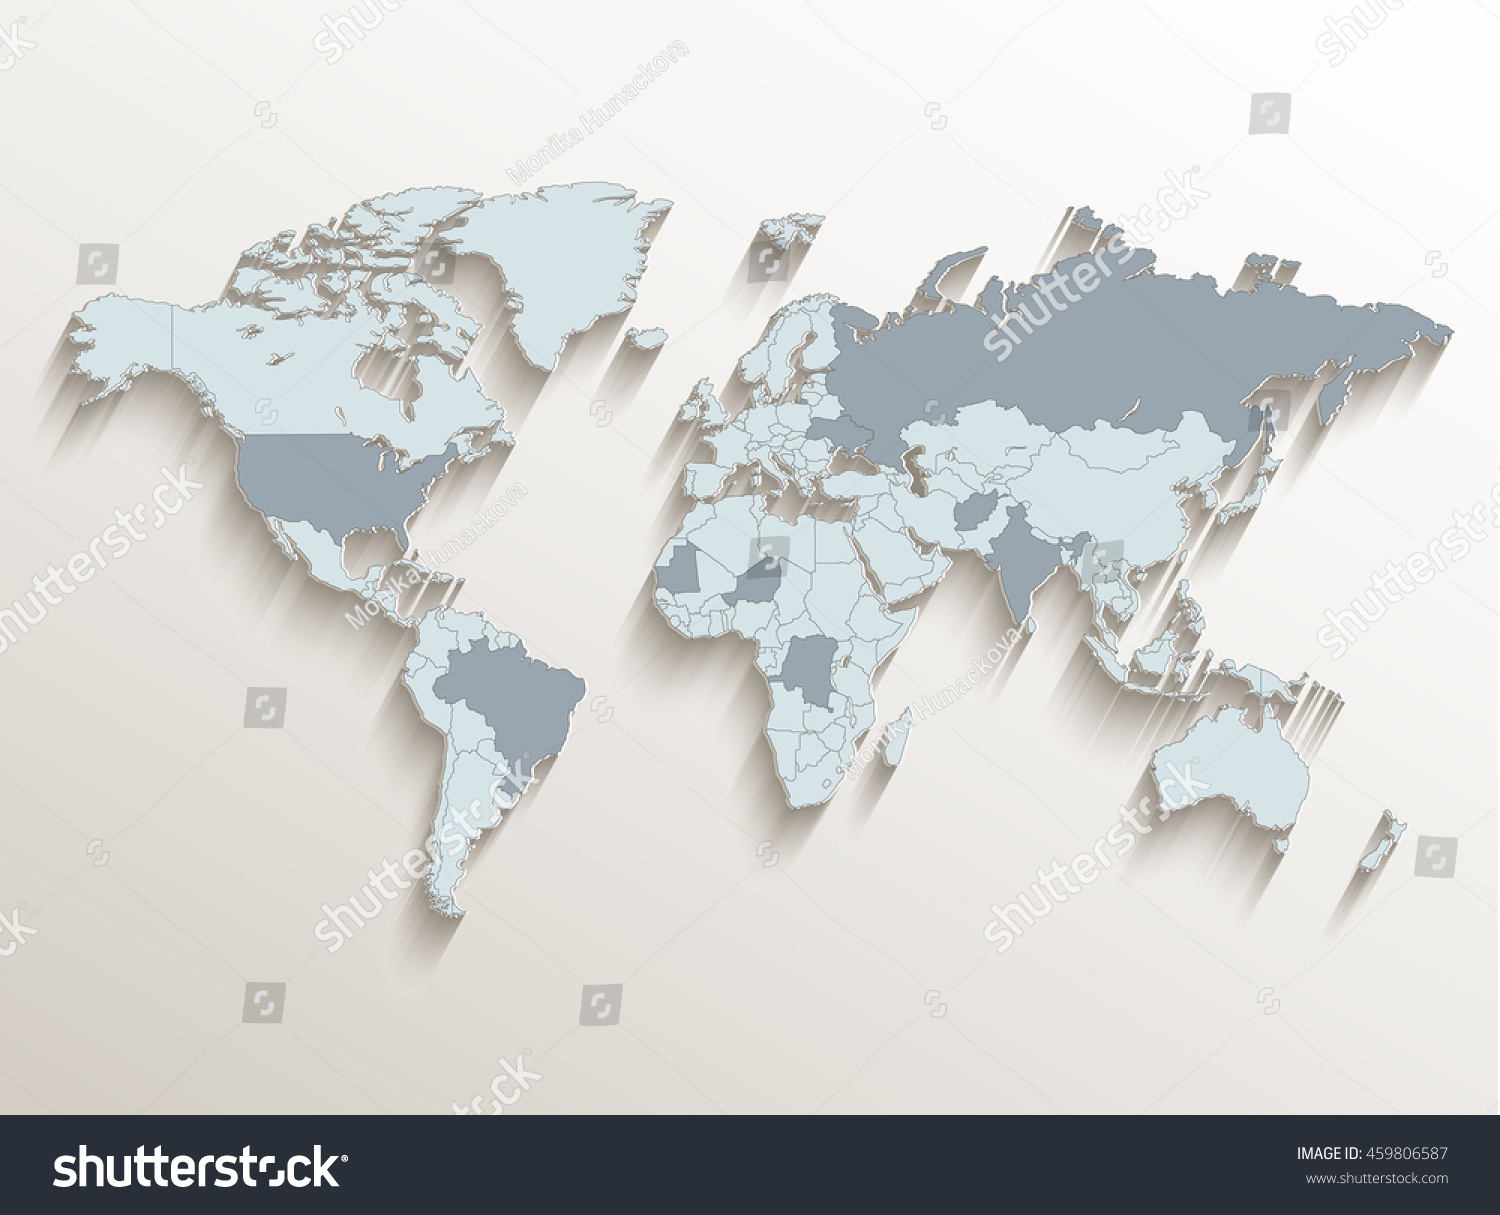 World political map white blue 3d stock vector 459806587 world political map white blue 3d vector gumiabroncs Images